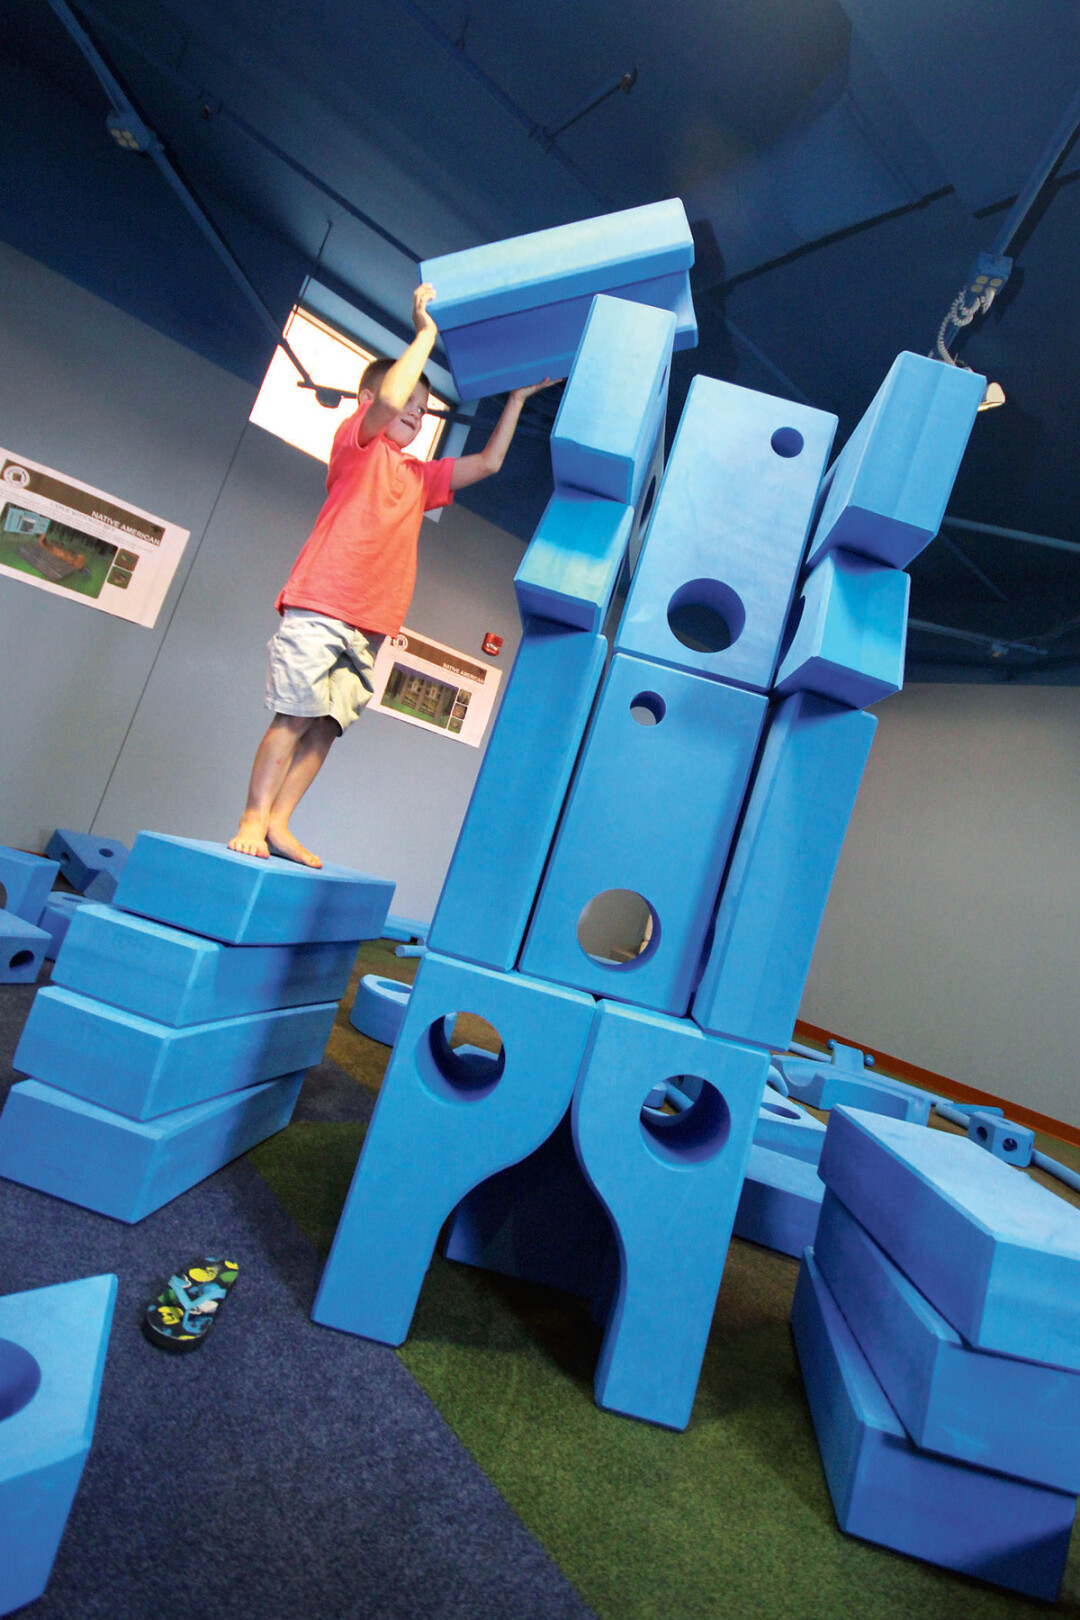 THE IMAGINATION PLAYGROUND AT THE CHILDREN'S MUSEUM OF EAU CLAIRE – A SET OF OVERSIZED BLOCKS – IS GREAT FOR IMAGINATIVE PLAY.